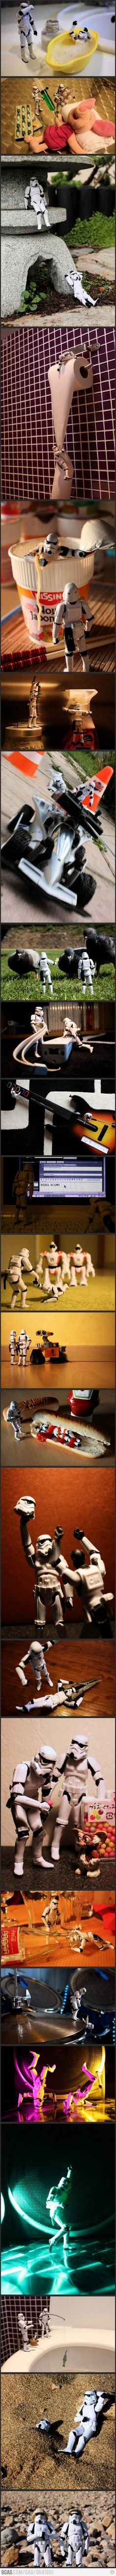 Stormtroopers - in Real Life.